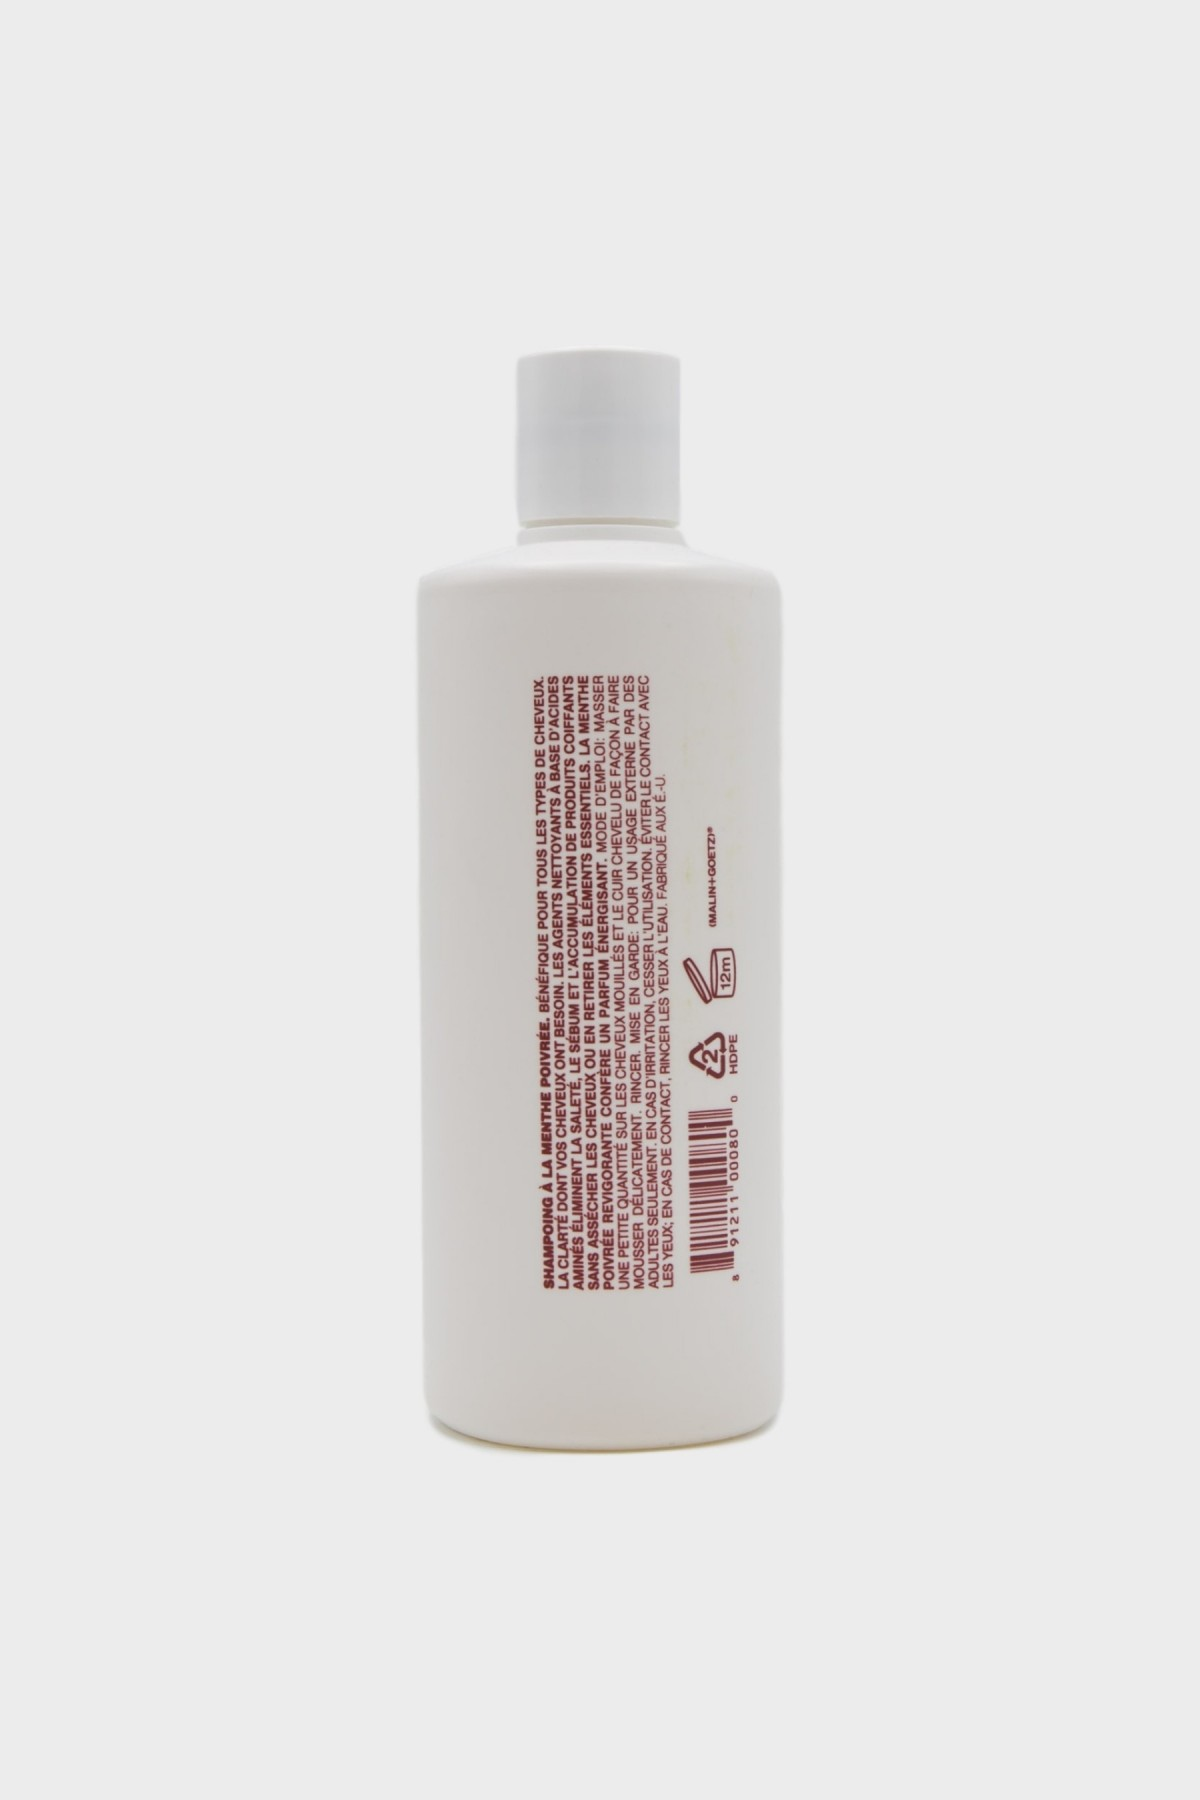 Malin+Goetz Peppermint Shampoo 473ml in